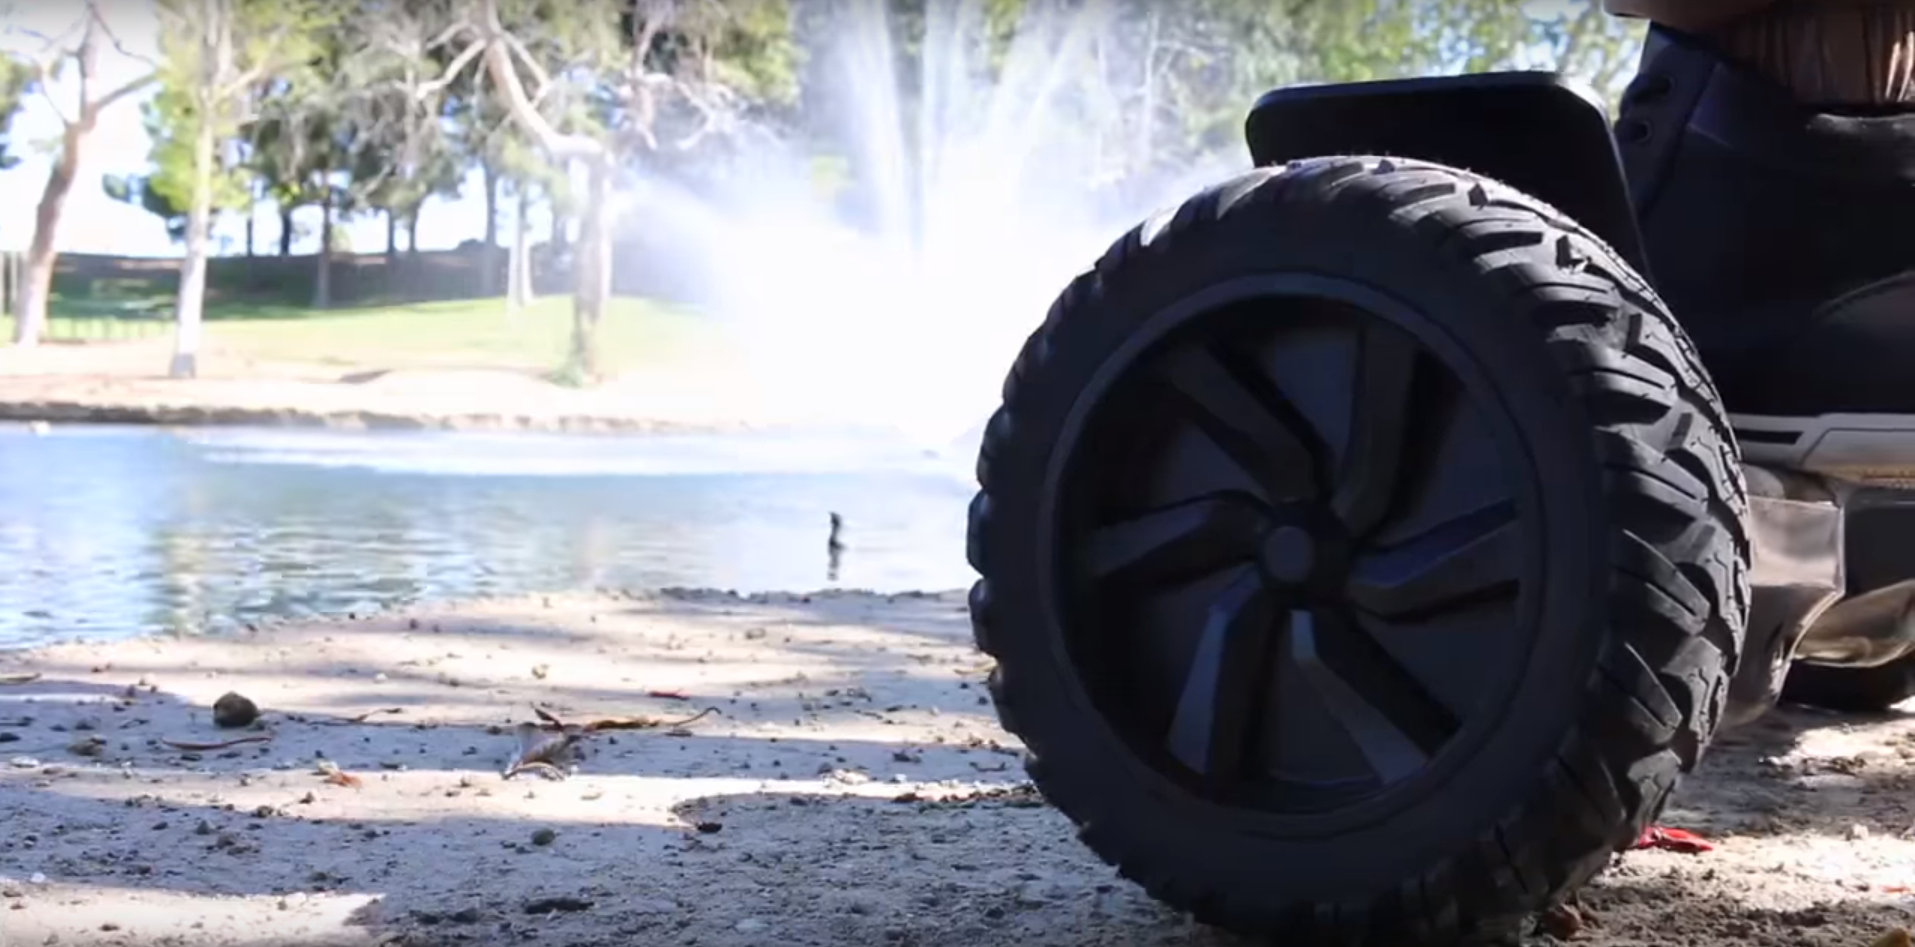 Hoverboard Reviews - Asiwo All Terrain Self-Balancing Scooter Review